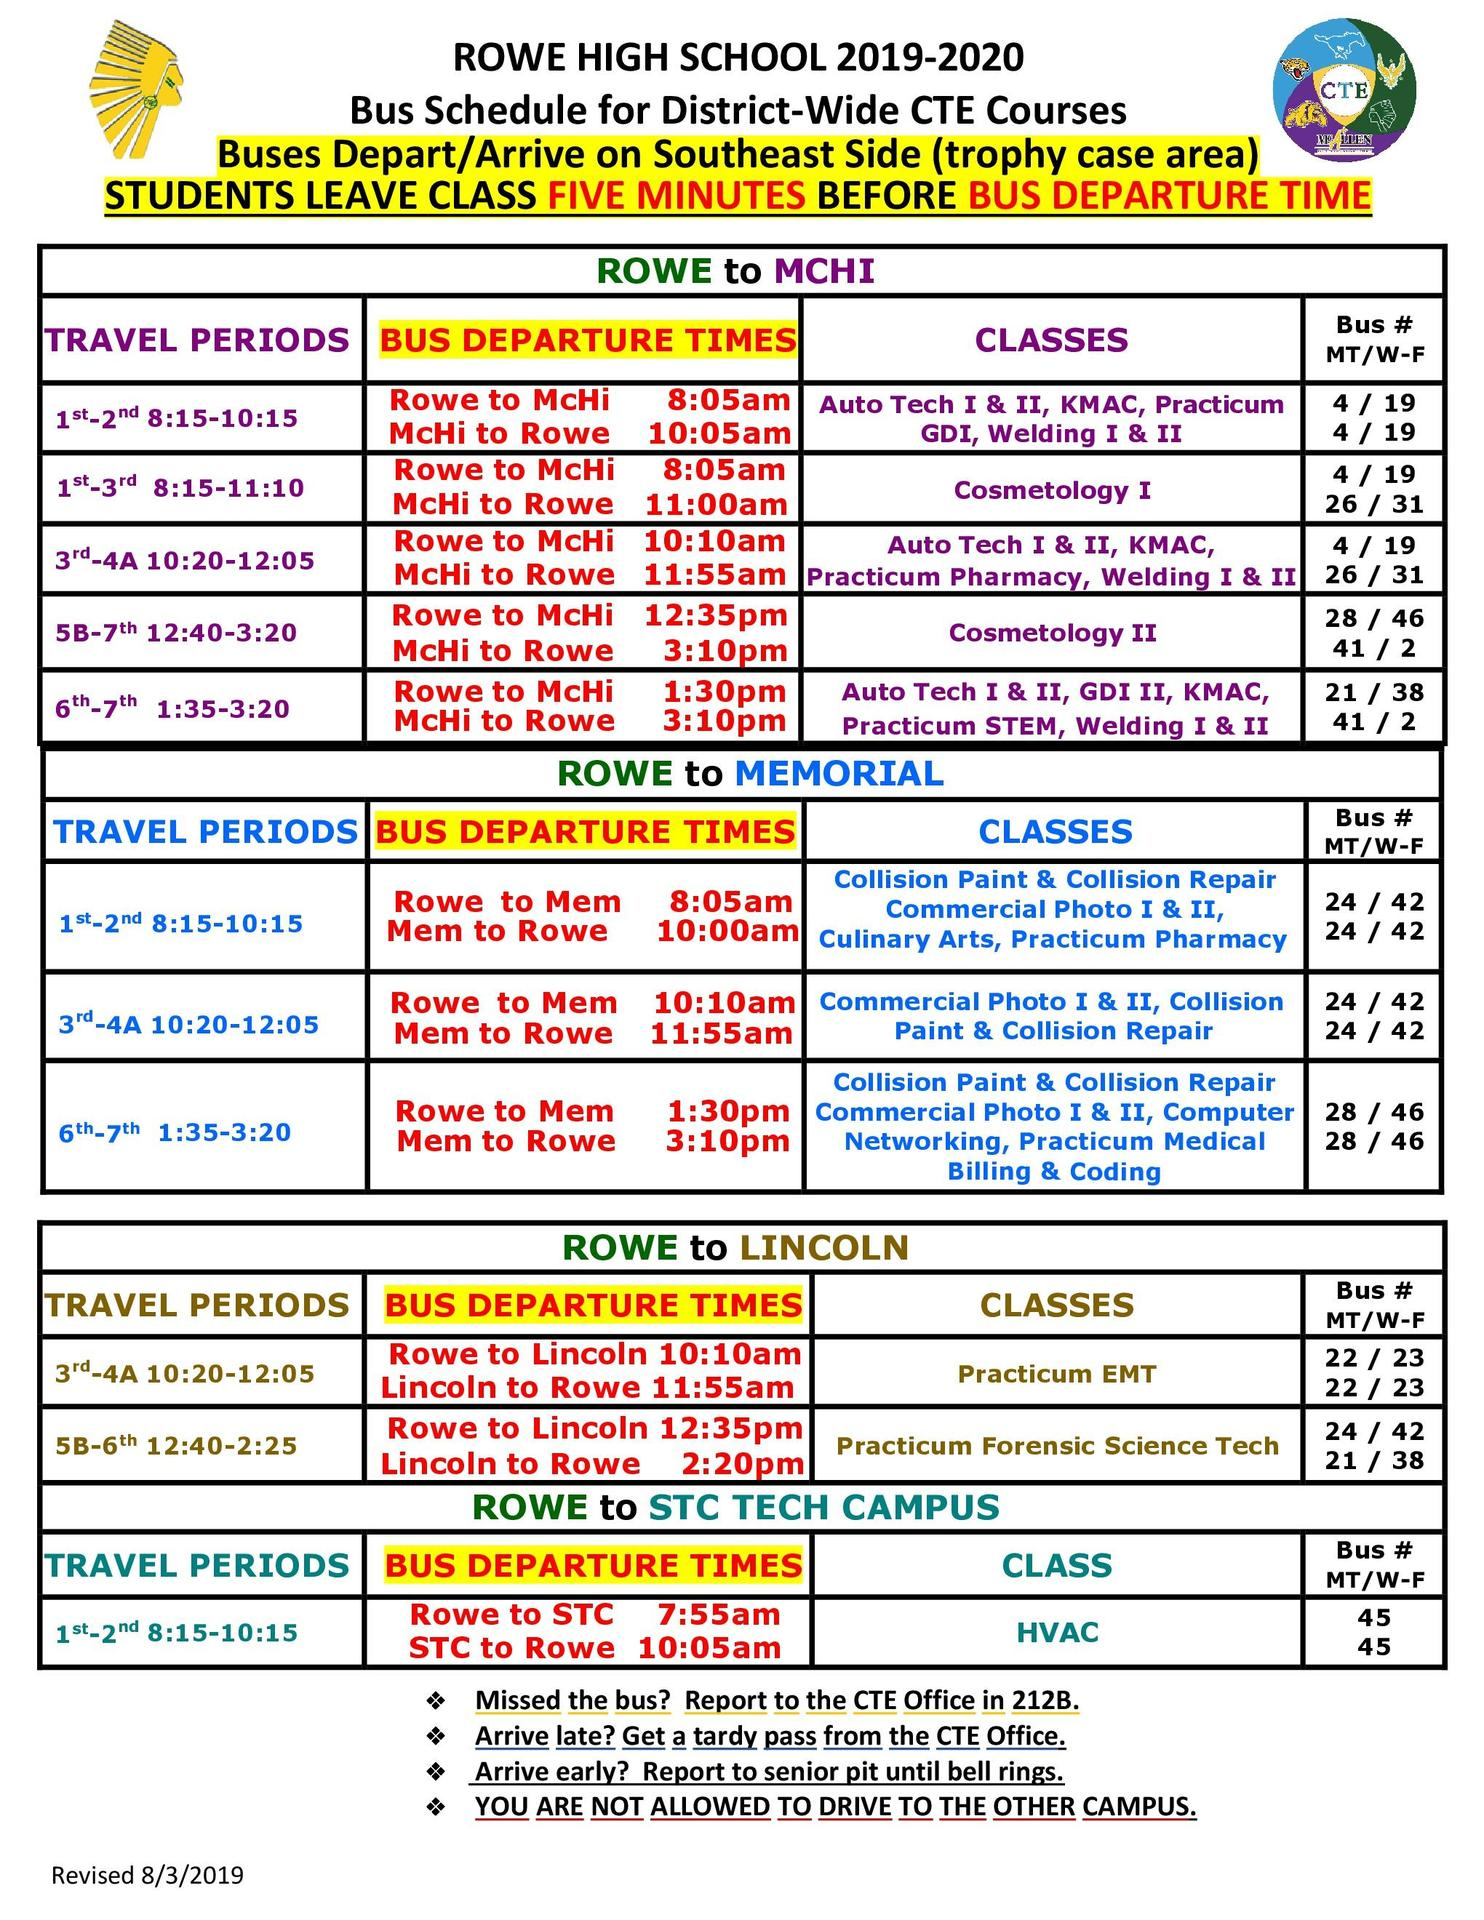 Rowe CTE District-wide Bus Schedule